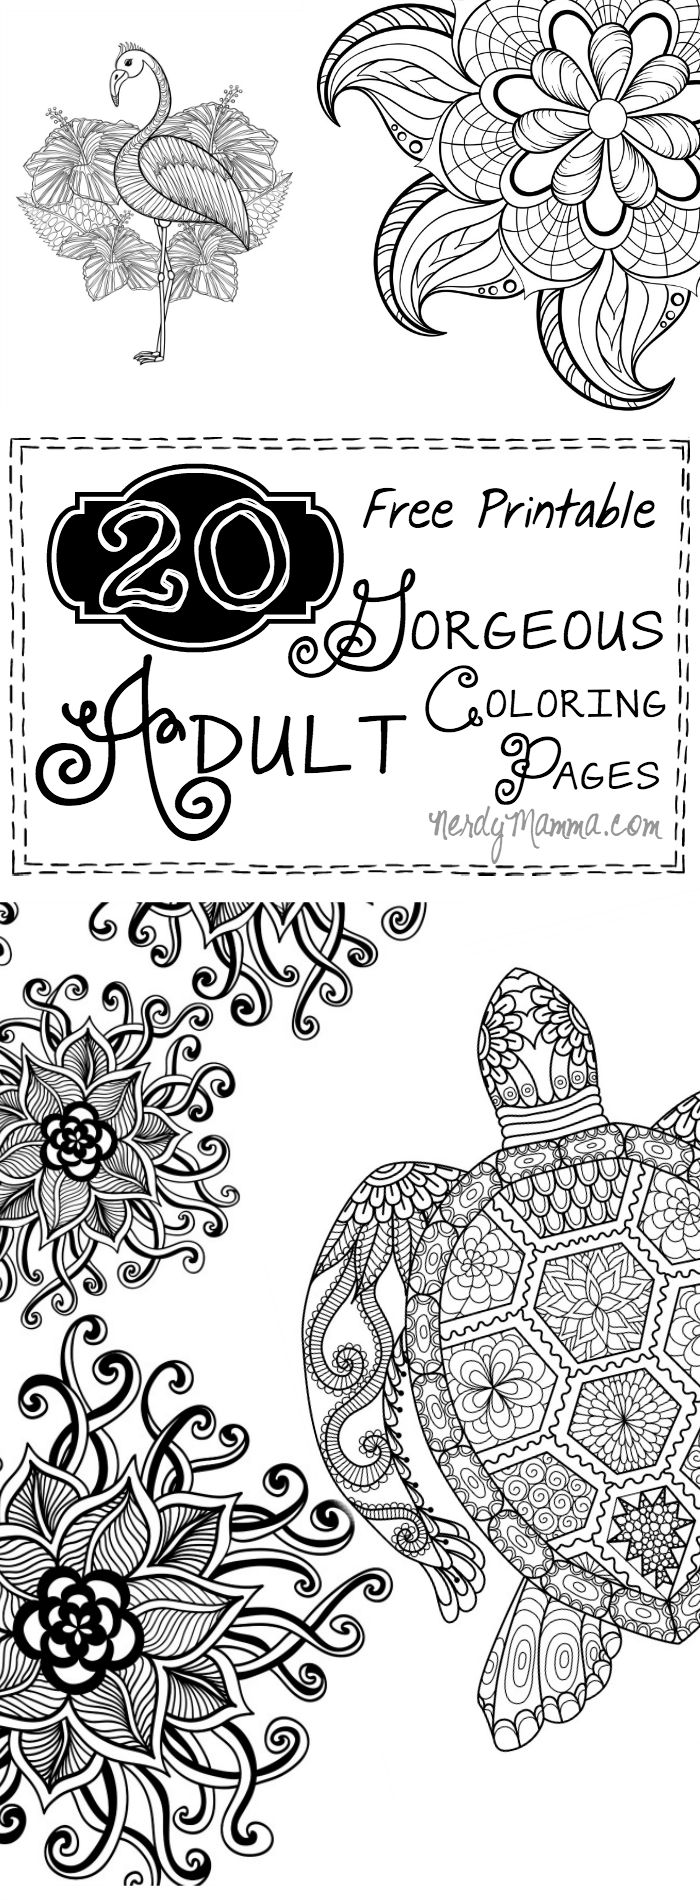 20 gorgeous free printable adult coloring pages - Printing Pages